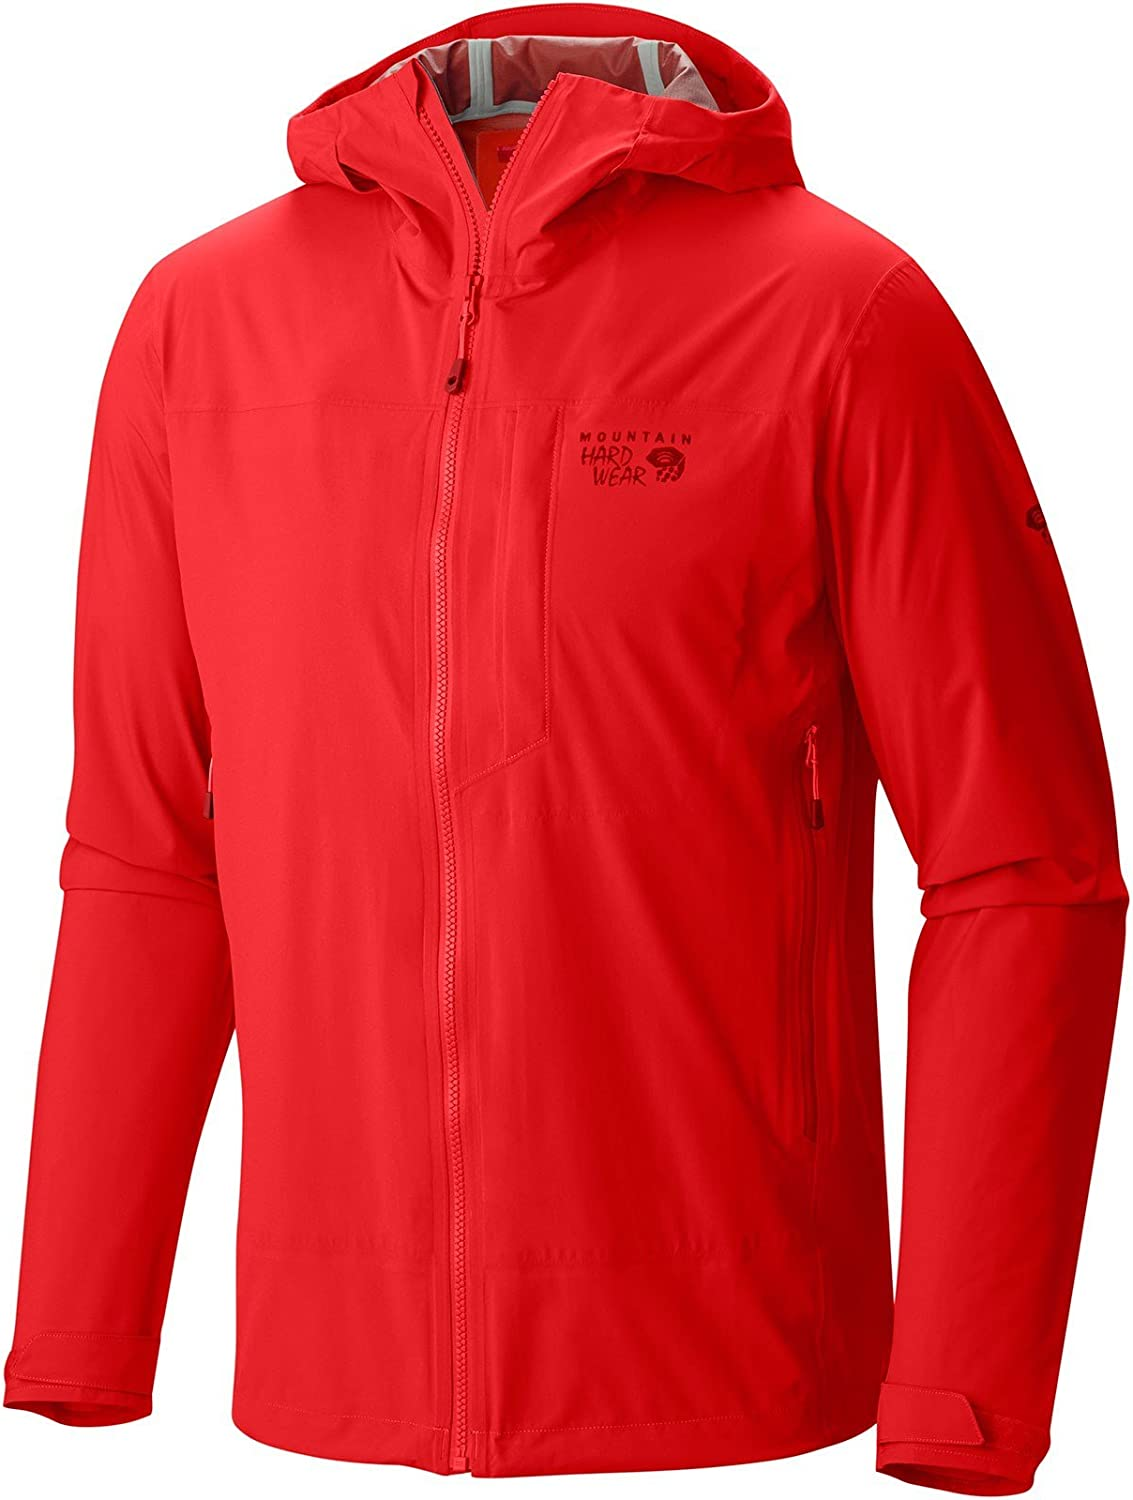 Mountain Hardwear Ozonic Men's Waterproof Jacket